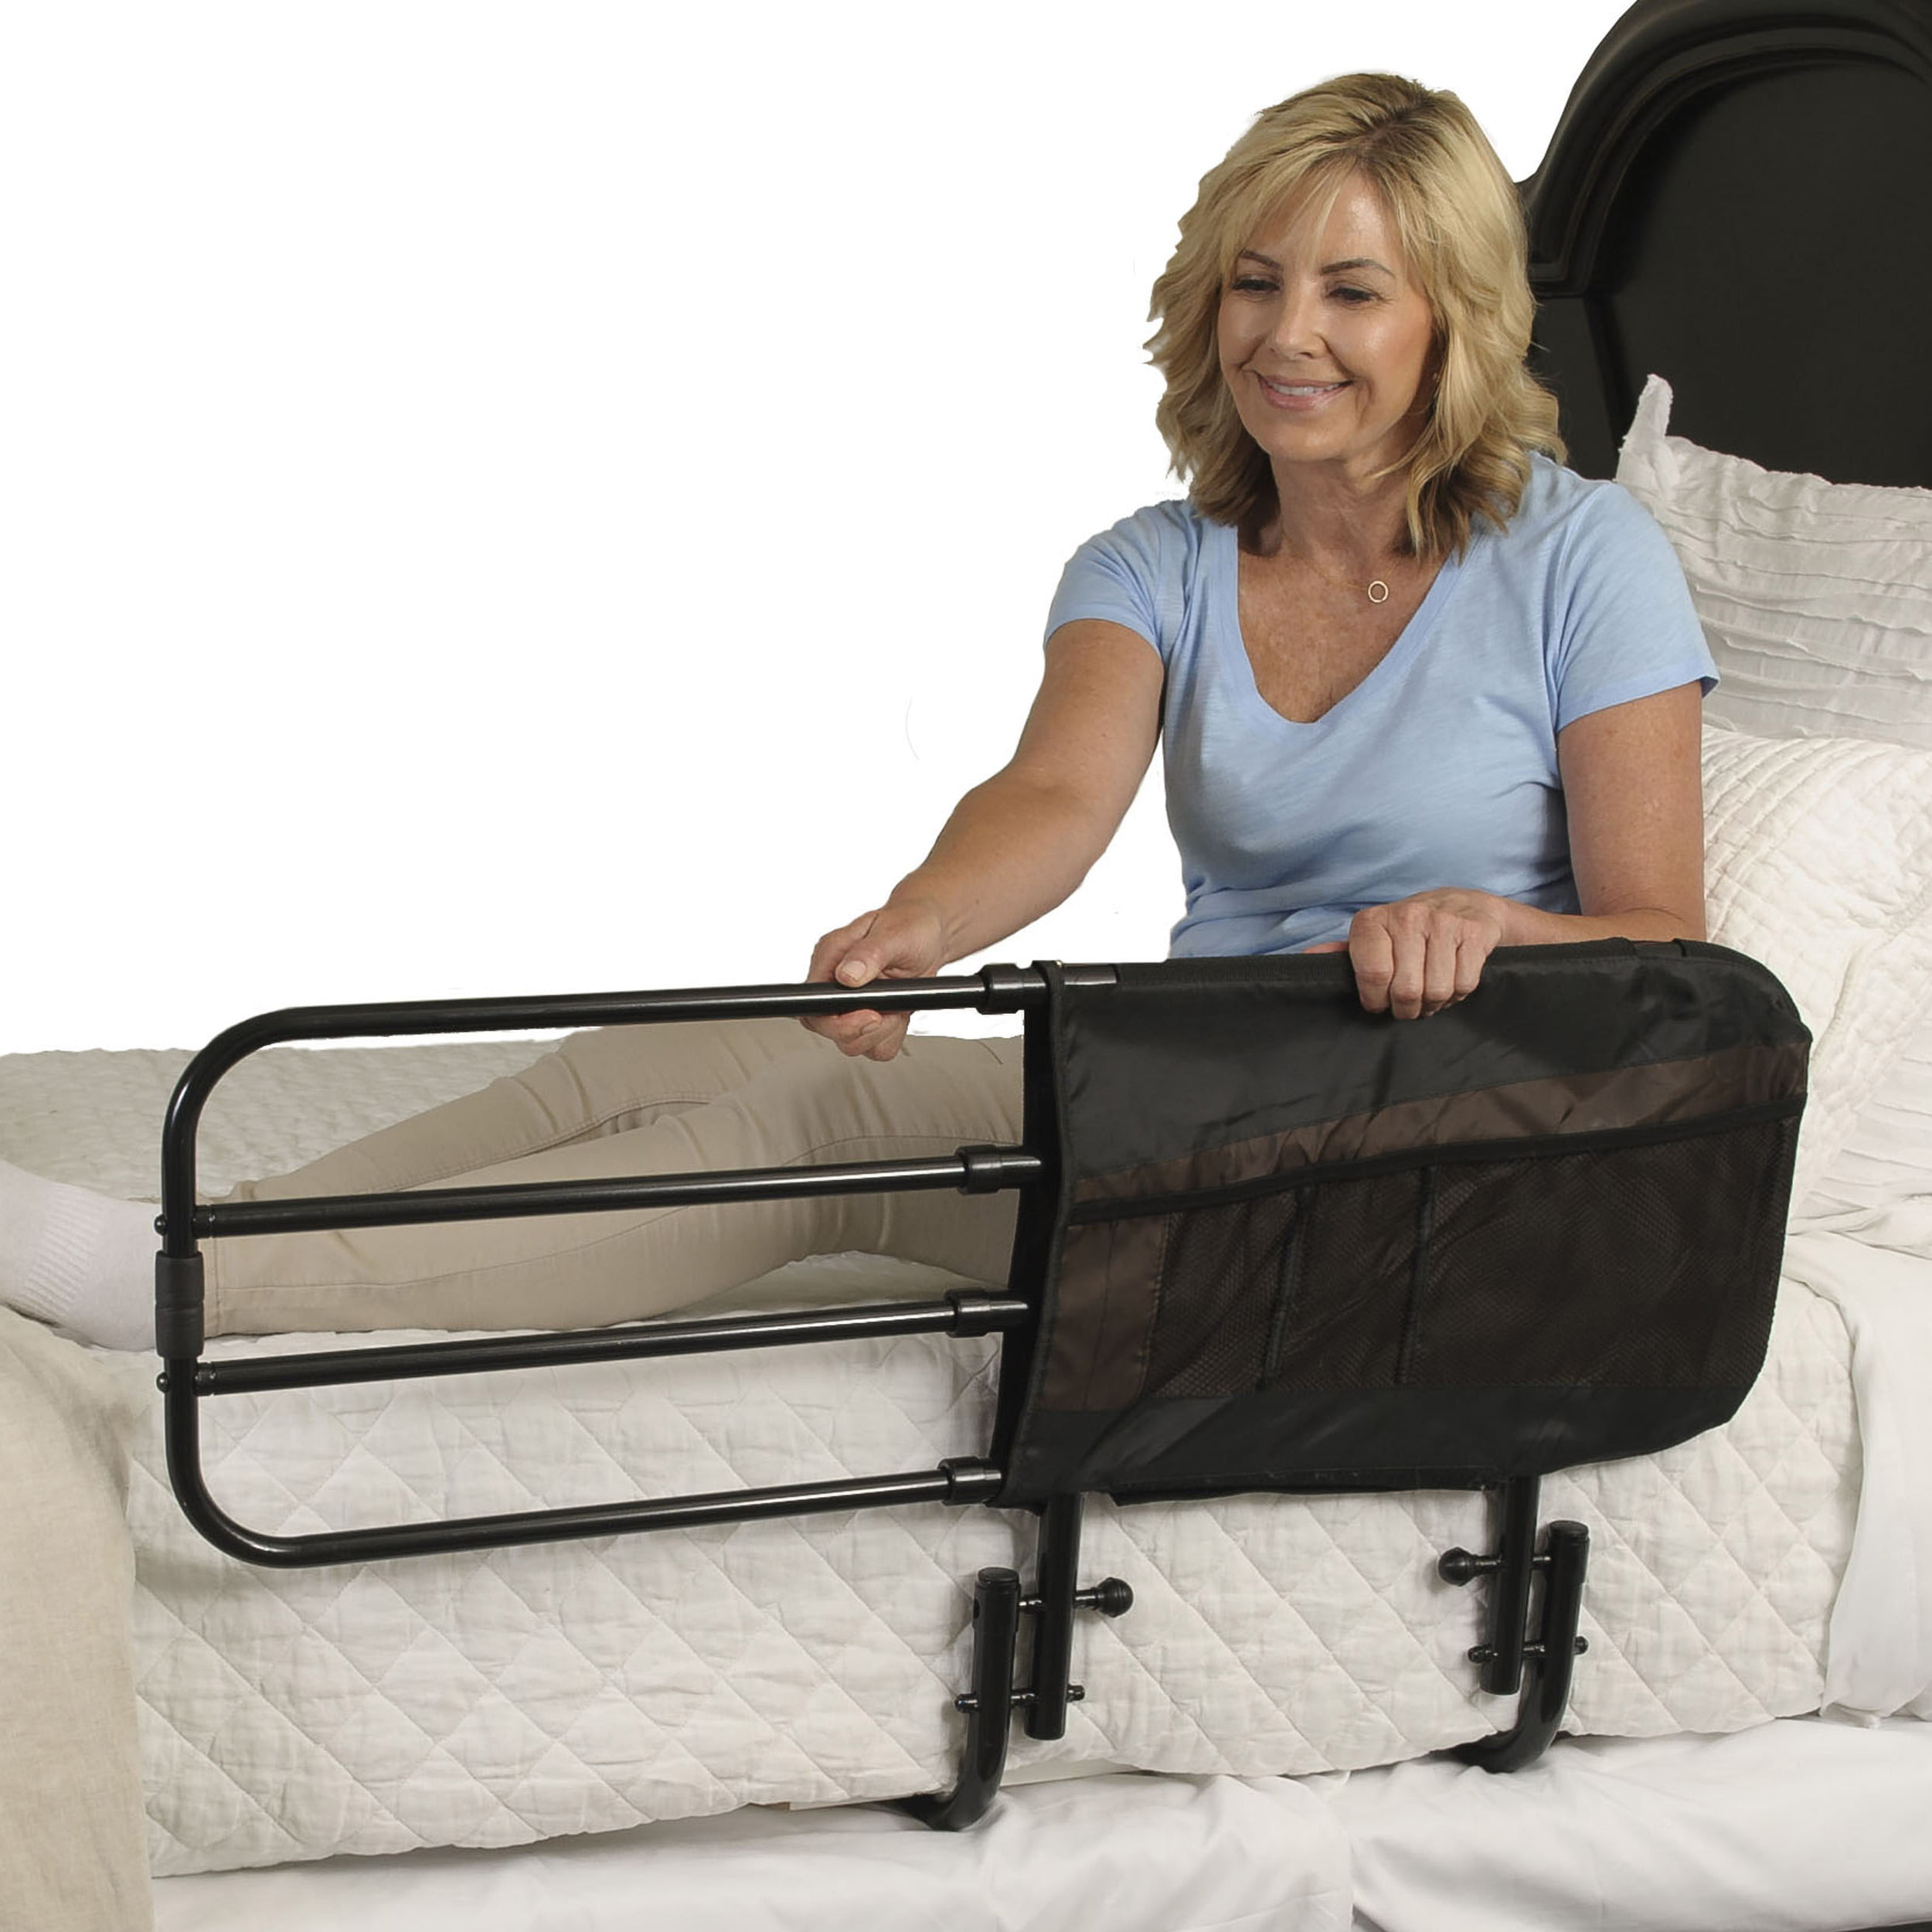 GY Hospital Grade Safety Bed Rails for Seniors Bed Rail Senior Adult Hand Rail for King Queen Twin Size Bed Handicap Bed Grab Rail Bedside Handrail